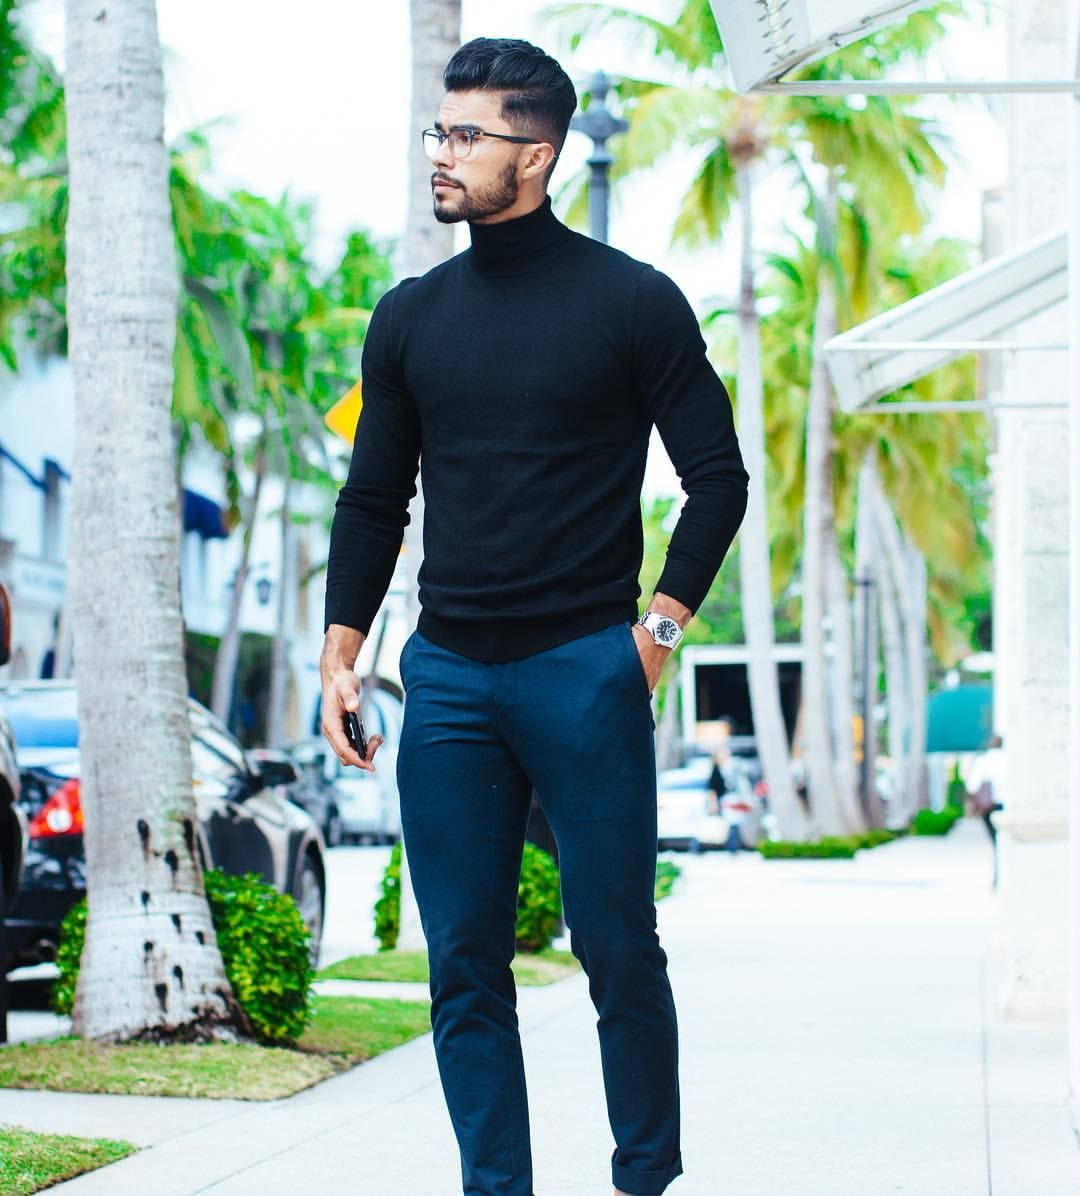 Jose Zuniga On Instagram One Of The Best Sweaters A Man Can Wear Is The Turtle Neck It Struc Sweater Outfits Men Turtleneck Outfit Men Teaching Mens Fashion